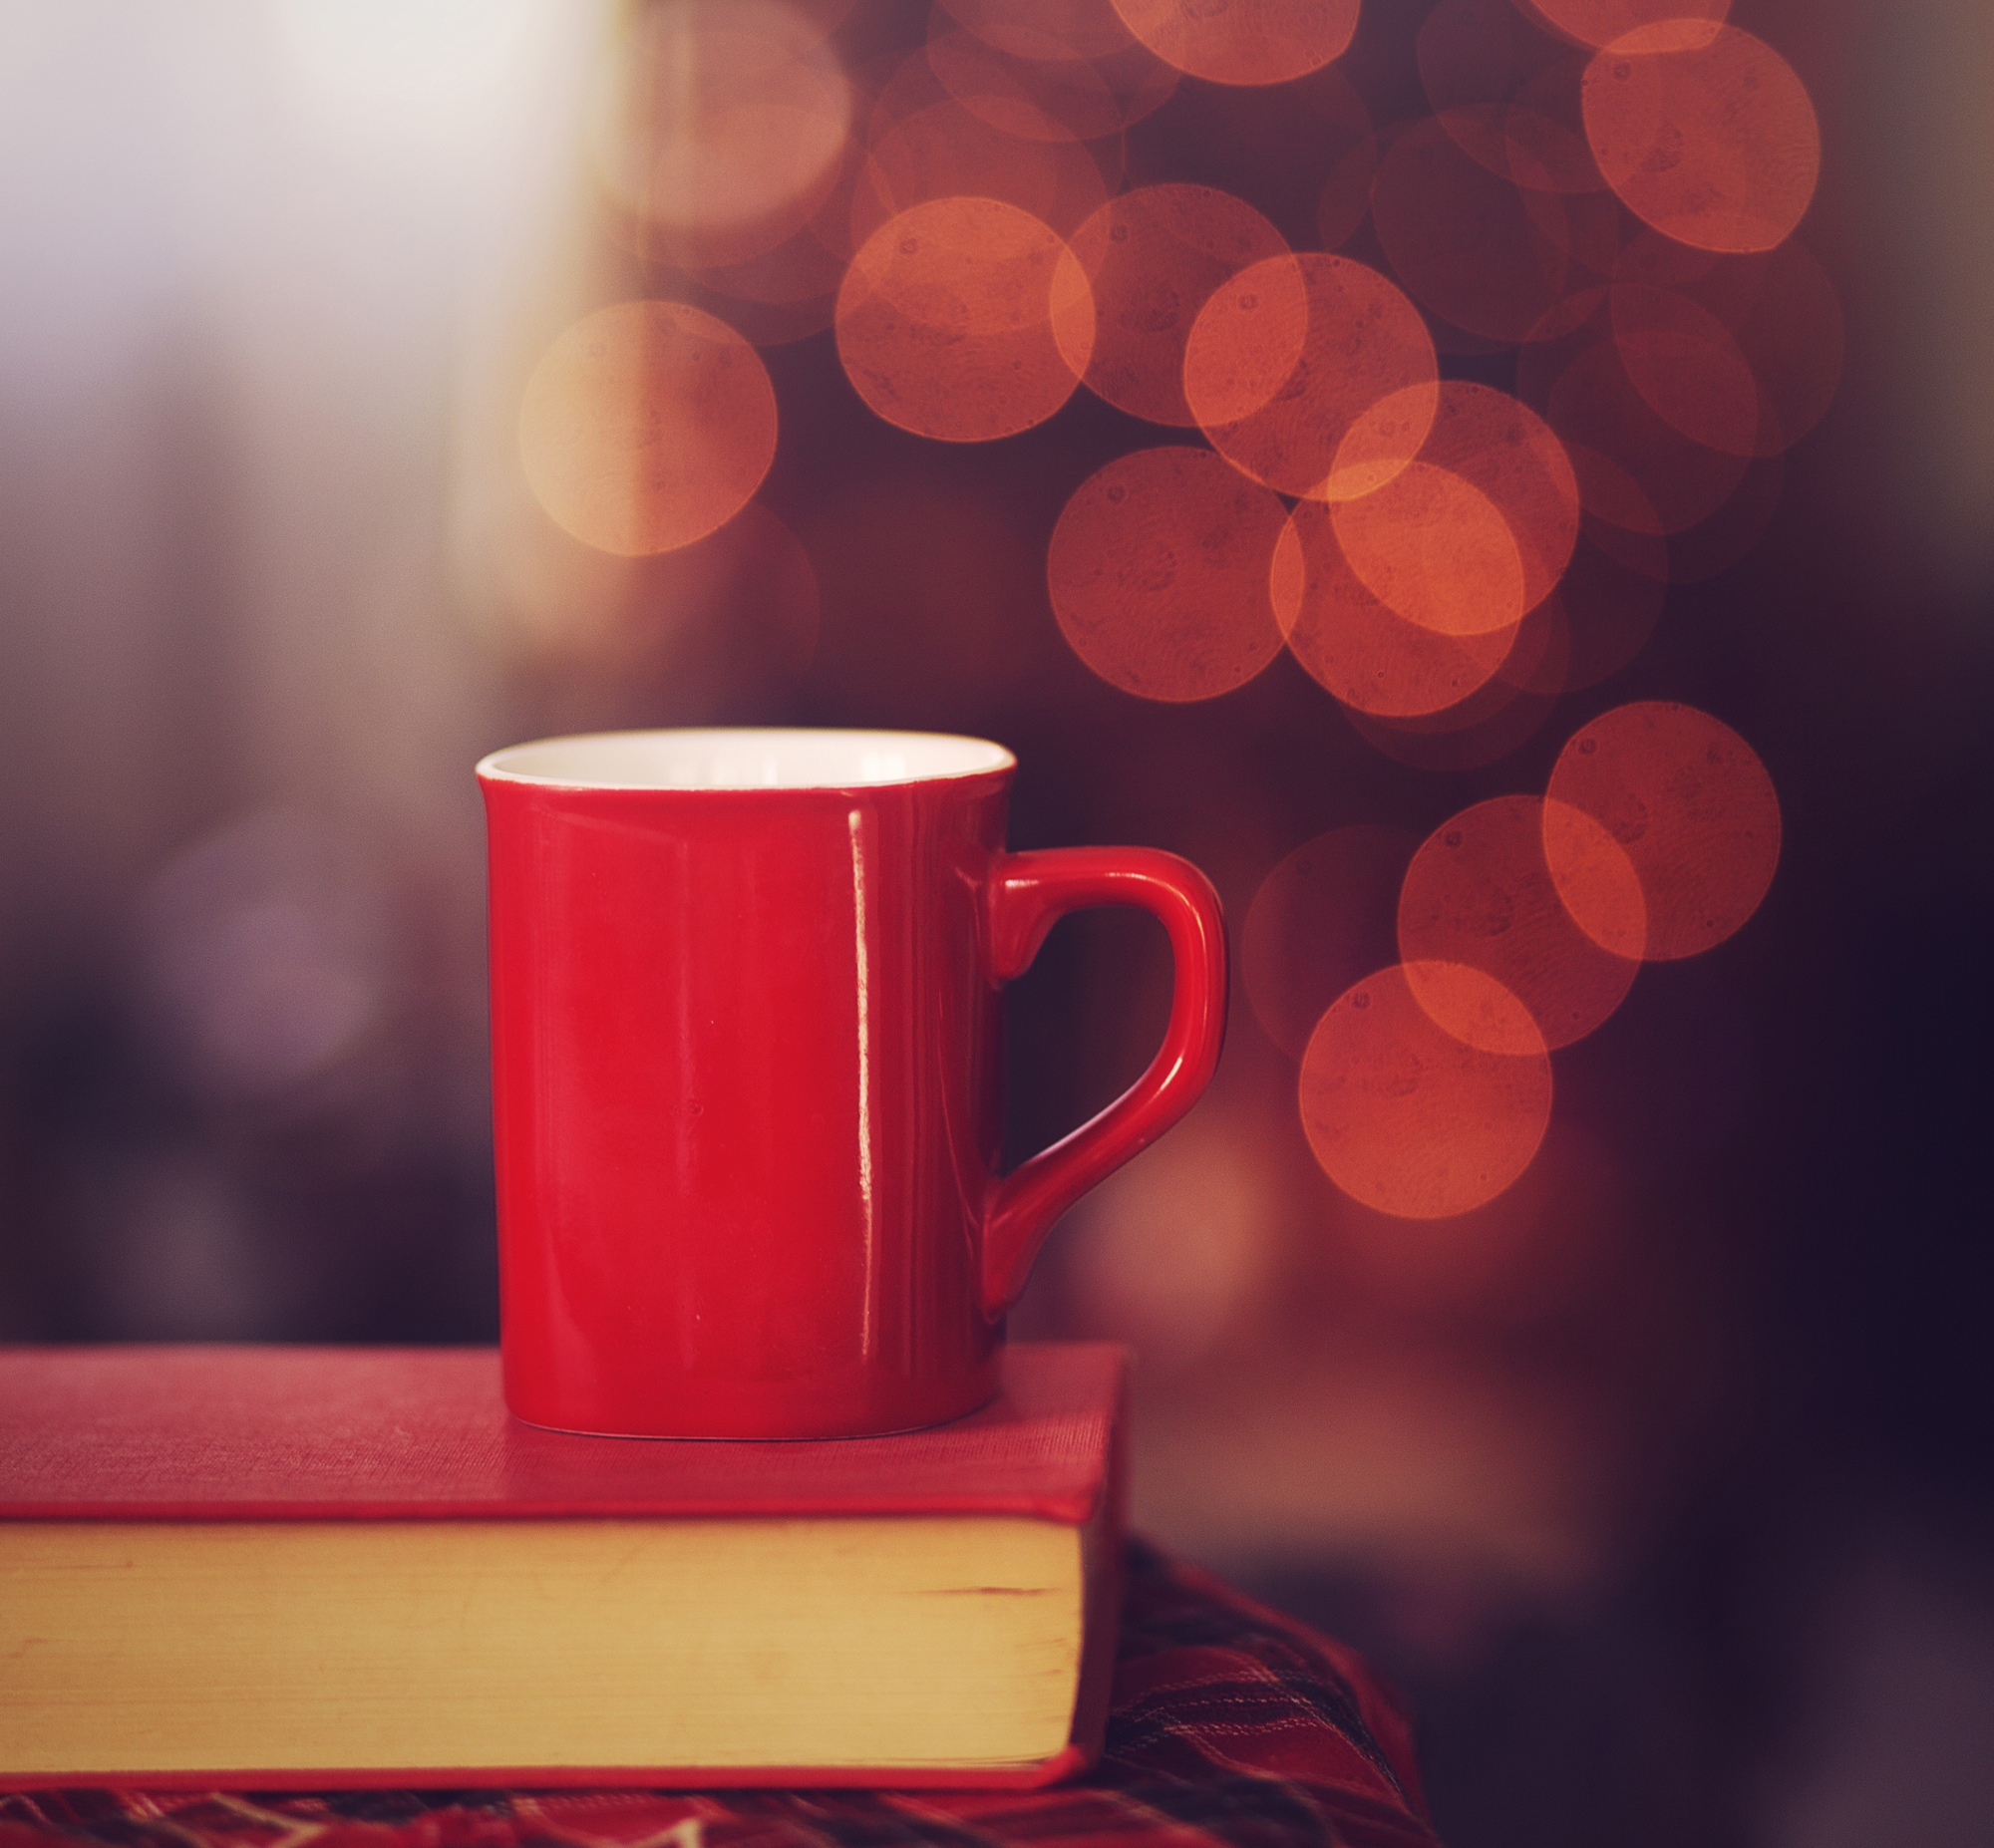 red-coffee-mug-book